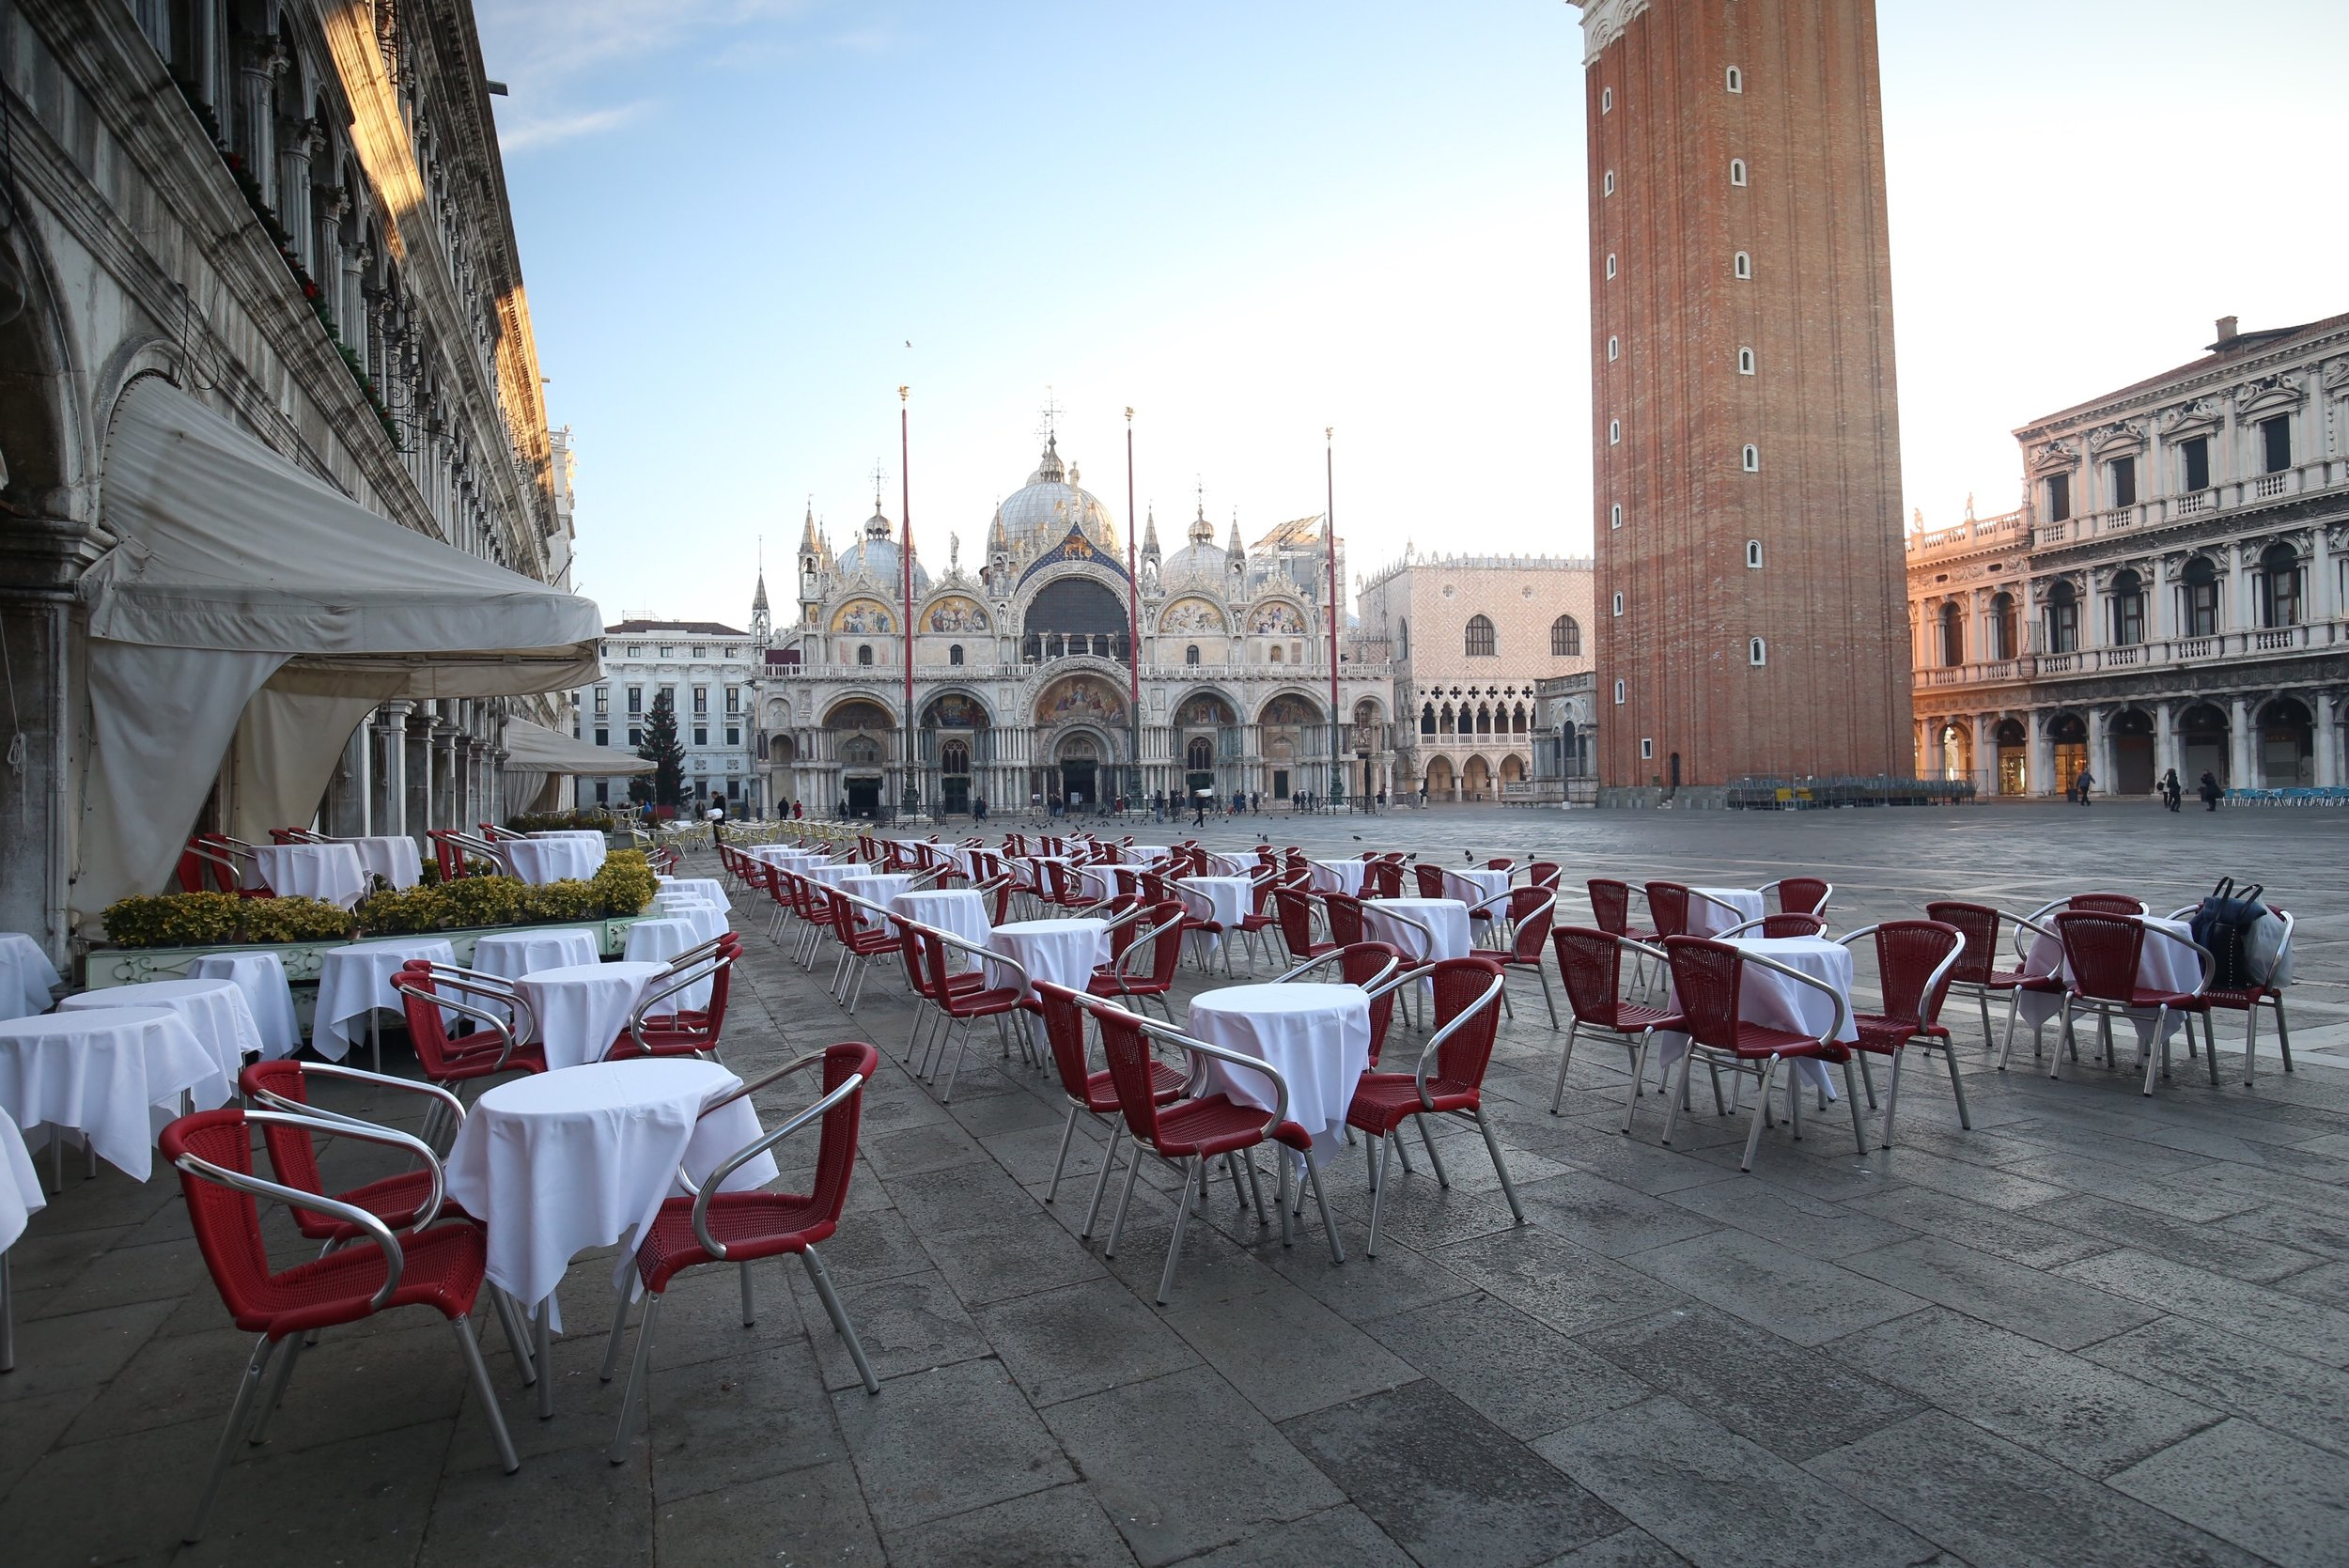 Red seats and small tables ready in the early morning outside St Mark's Basilica.